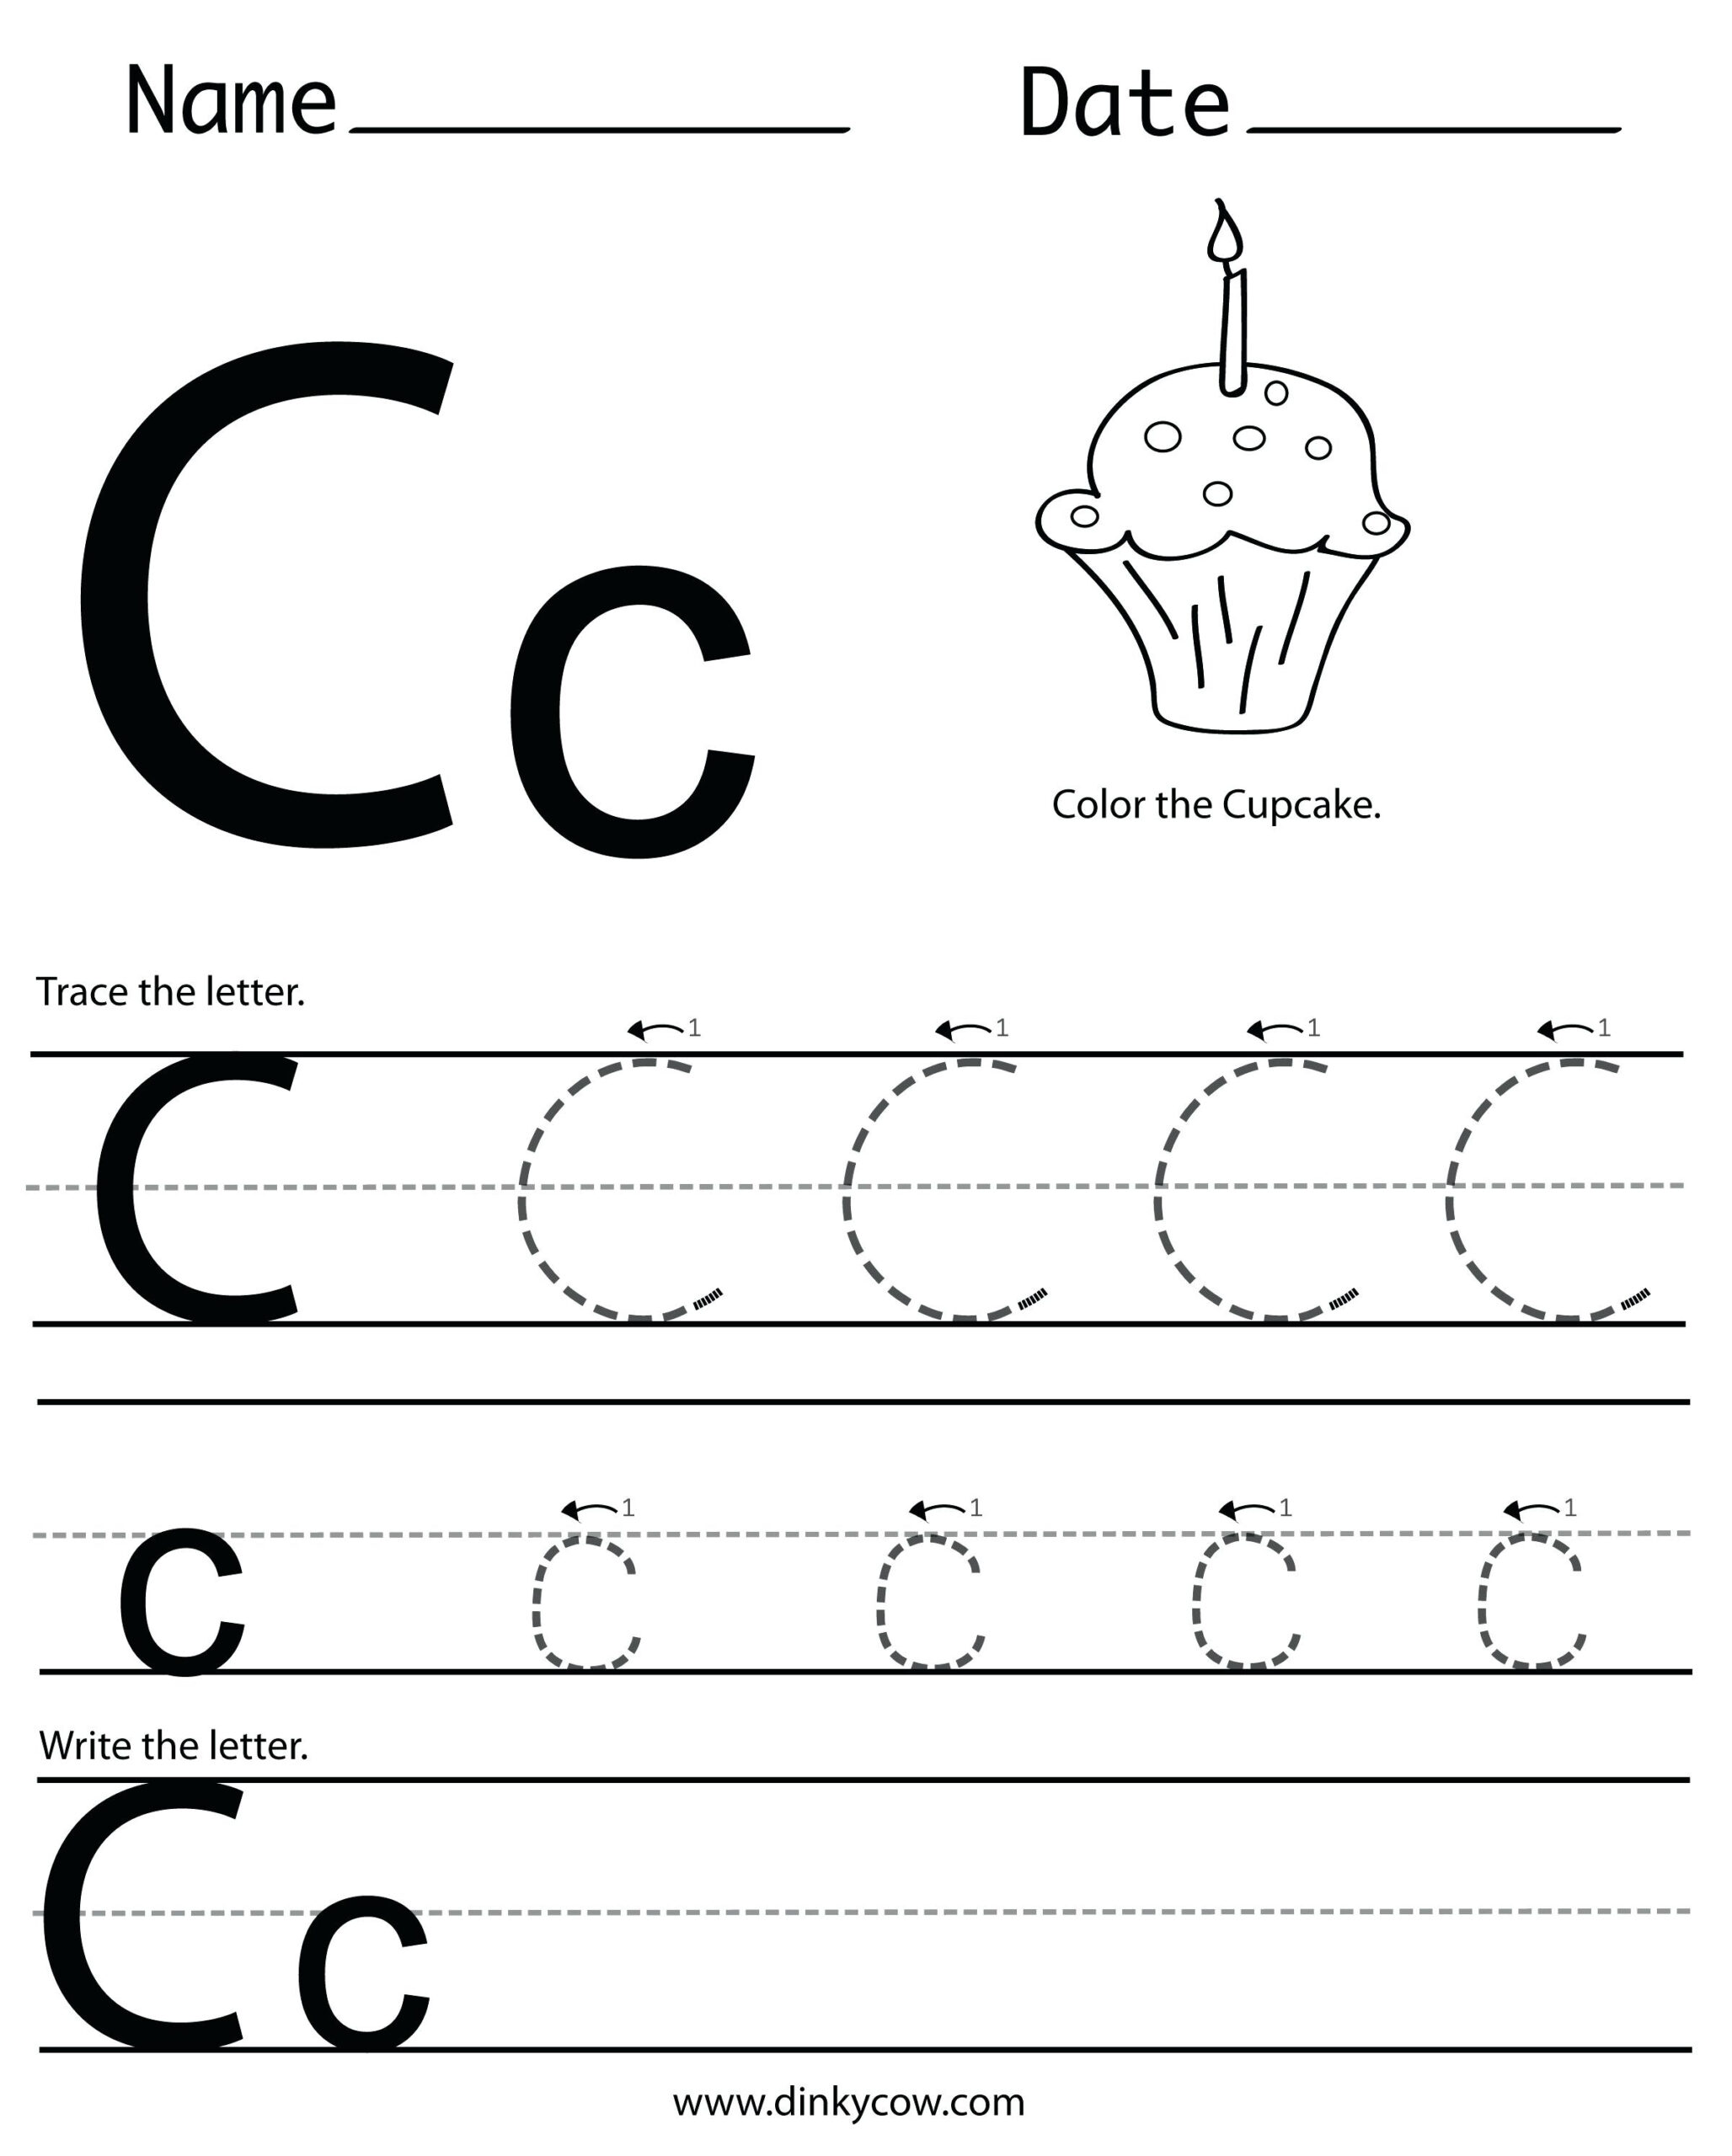 28 Letter C Worksheets For Young Learners | Kittybabylove with regard to Letter C Worksheets For 3 Year Olds